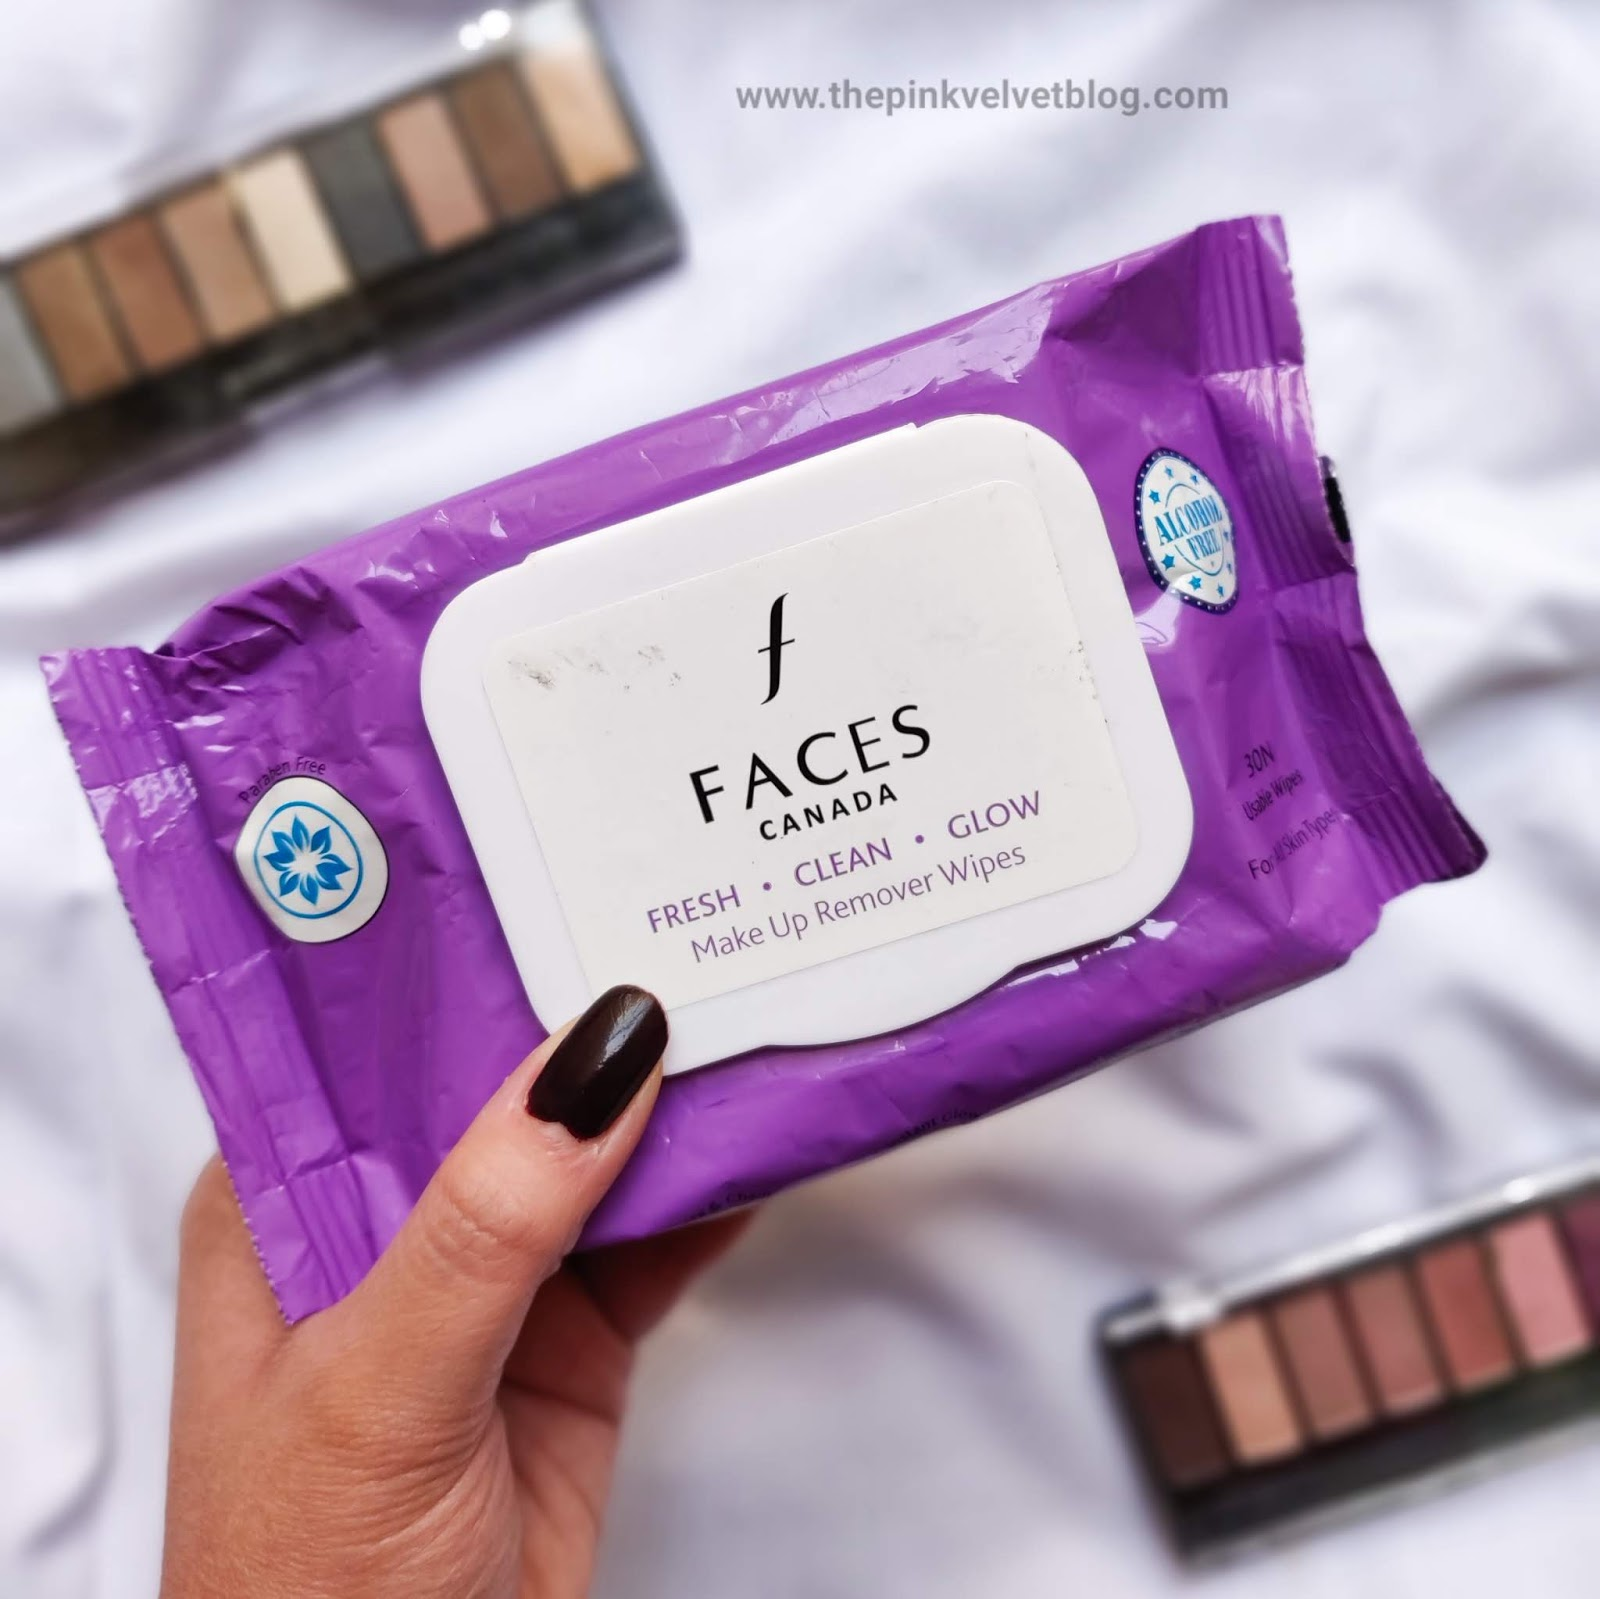 FACES Canada Paraben-Free and Alcohol-Free Makeup Remover Wipes - Review